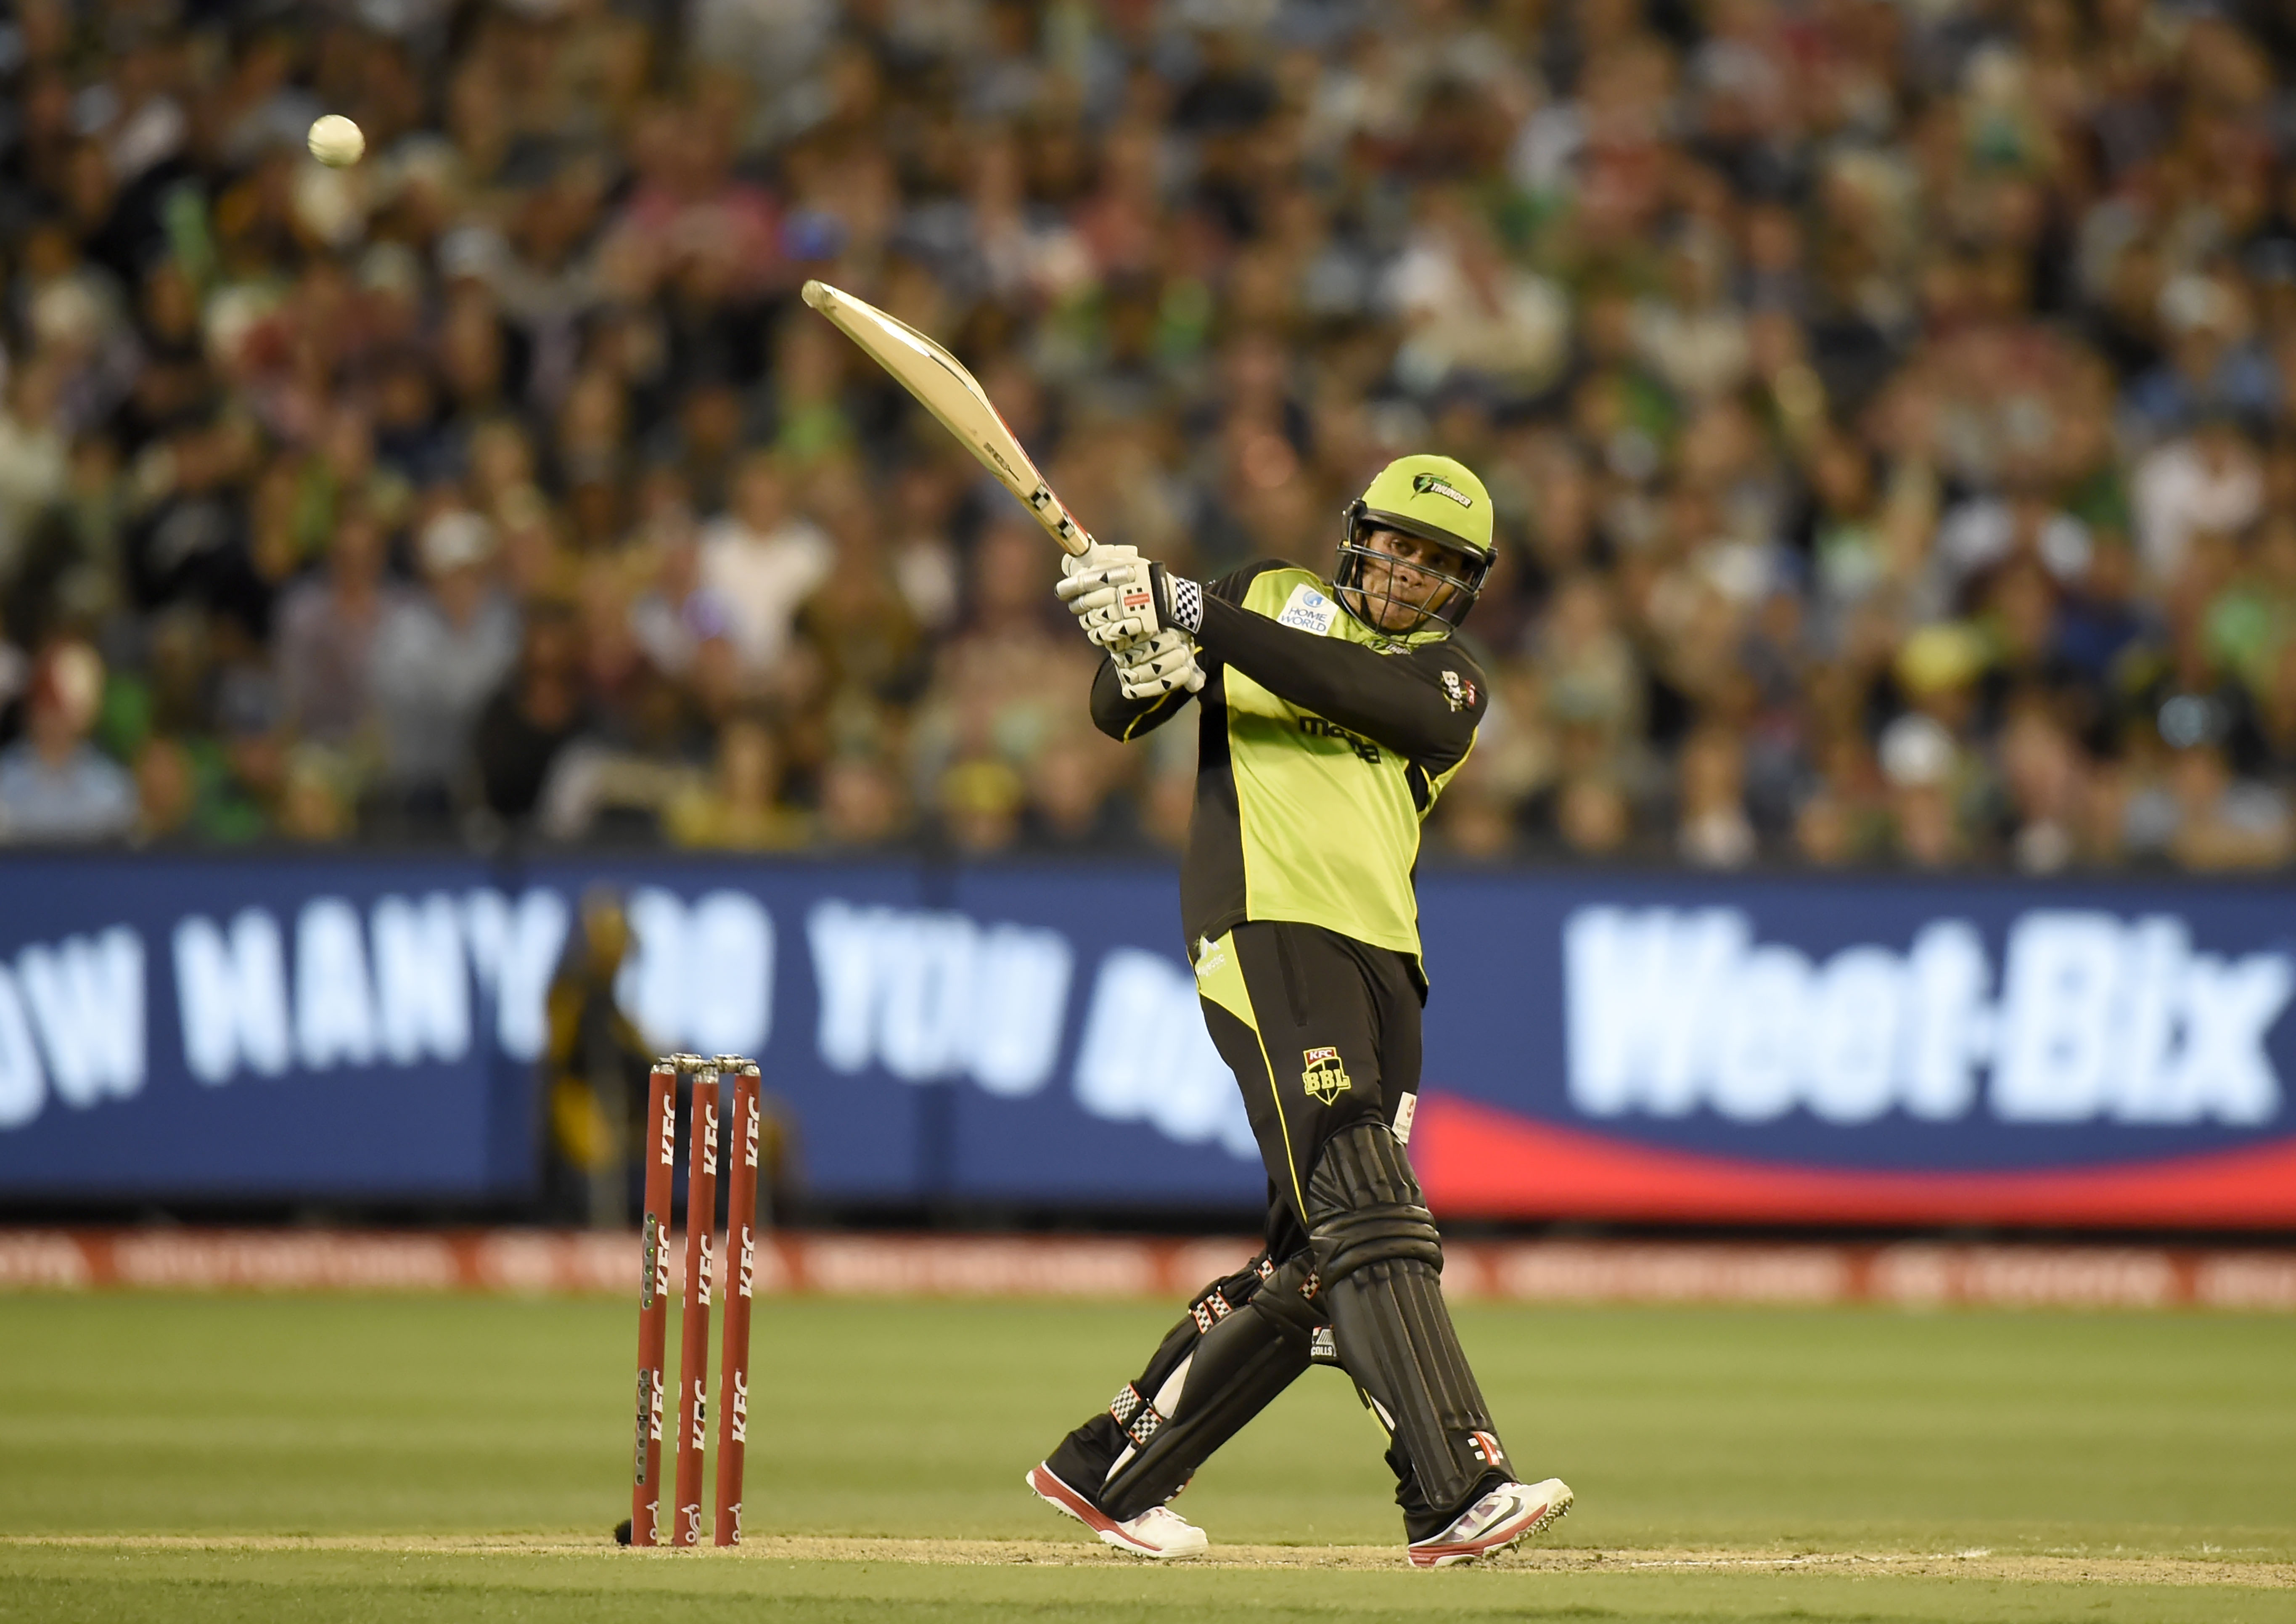 Usman Khawaja launches another ball towards the boundary in the Bash League Final. AAP Image/Mal Fairclough